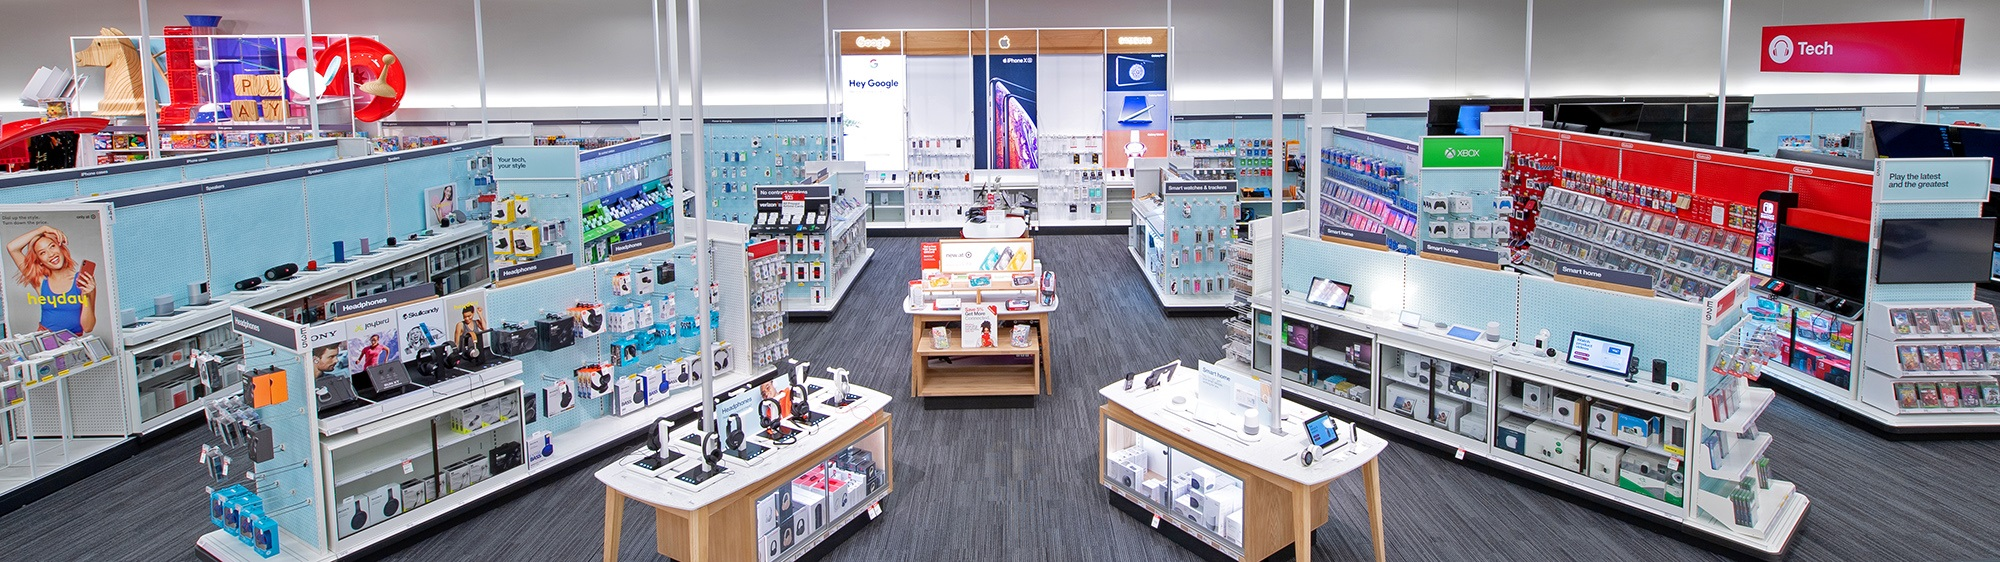 A wide shot of Target's electronics department with shelves of products on display.